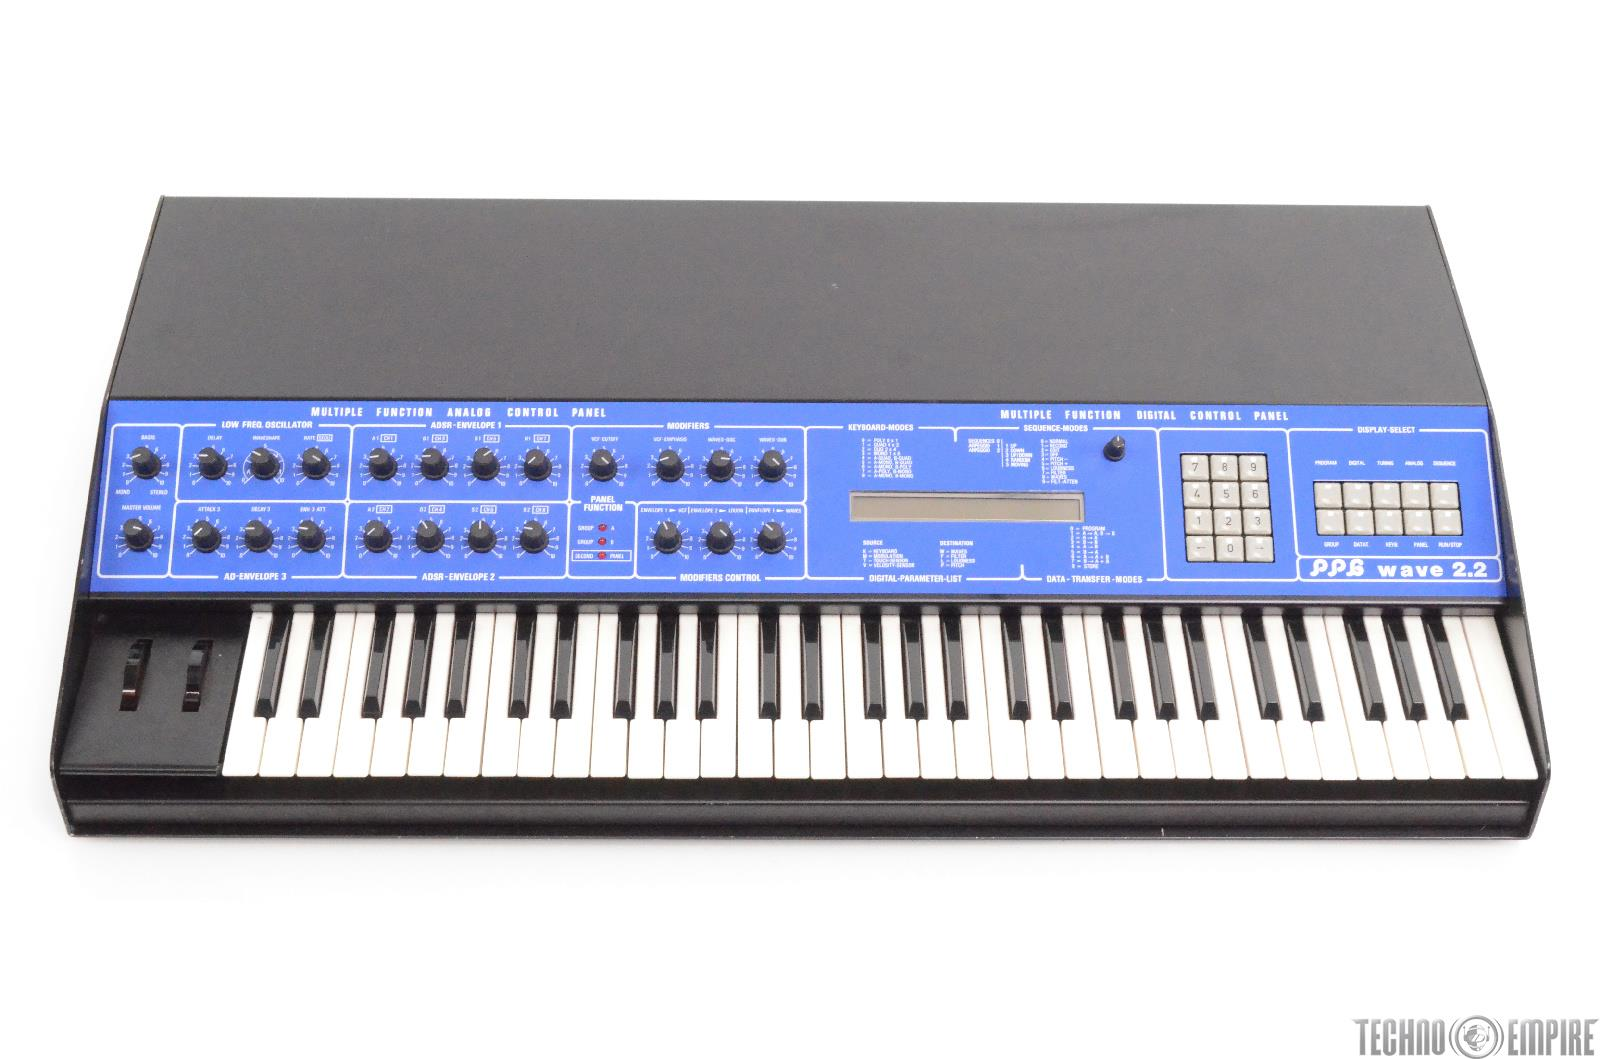 PPG Wave 2.2 Analog/Digital Wavetable Synthesizer Synth Refurbished #28450